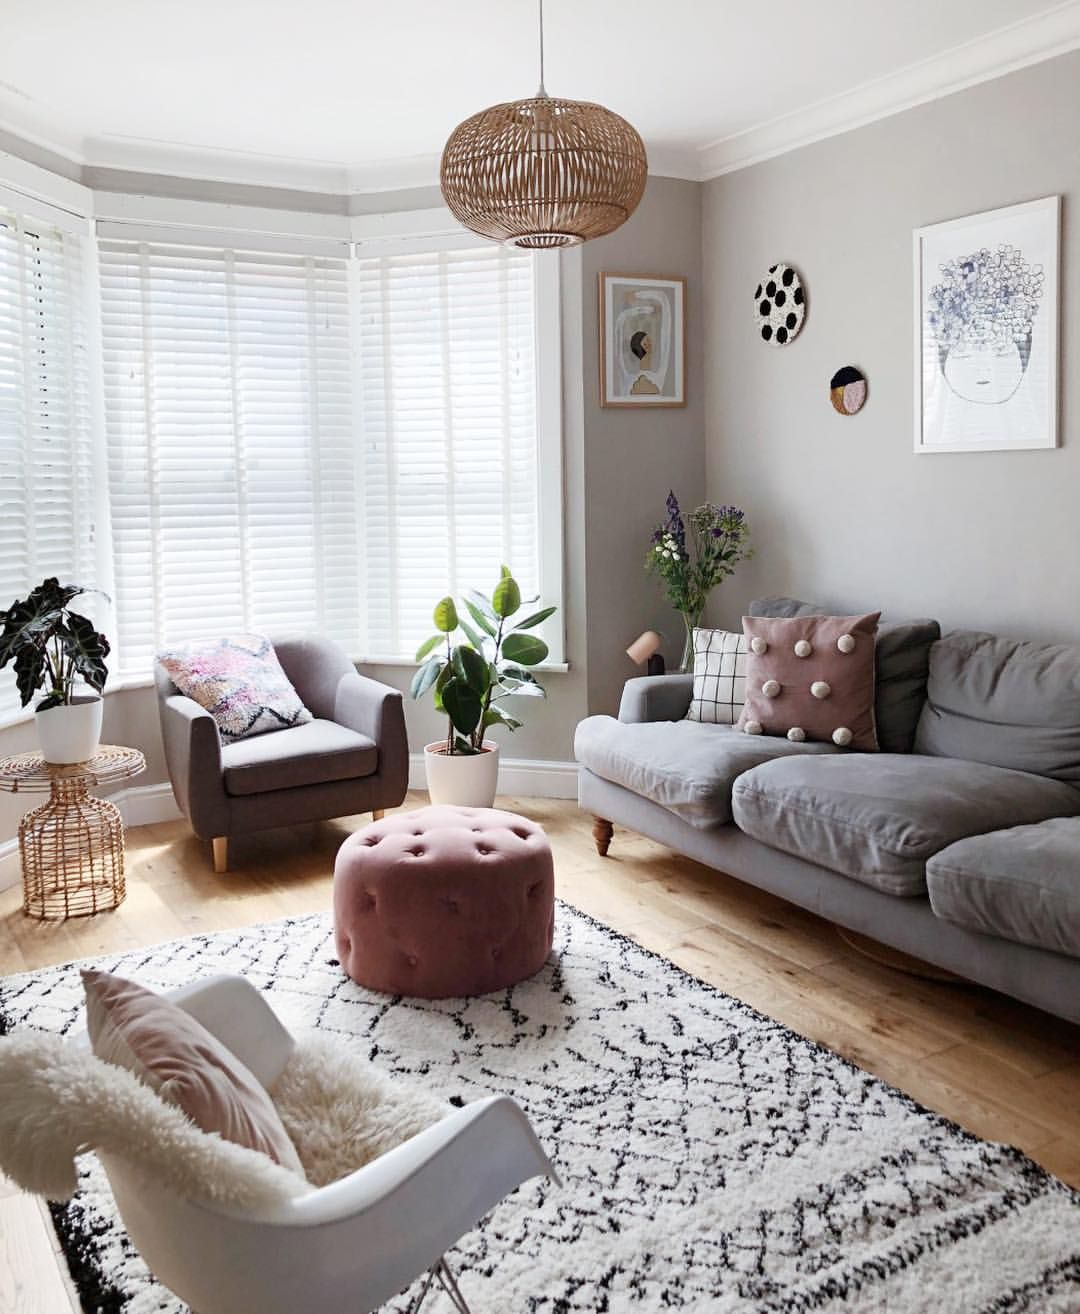 23 Best Copper And Blush Home Decor Ideas And Designs For 2019: Scandi Style Living Room In Farrow & Ball Pavilion Gray